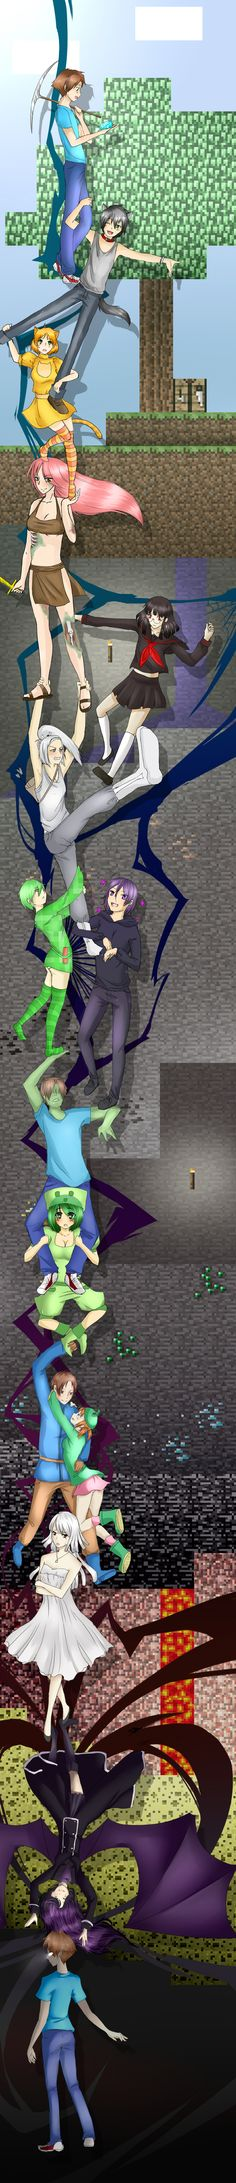 Omg i love this!!!! Minecraft as people thing with enderlox thing at the end of it!!!!